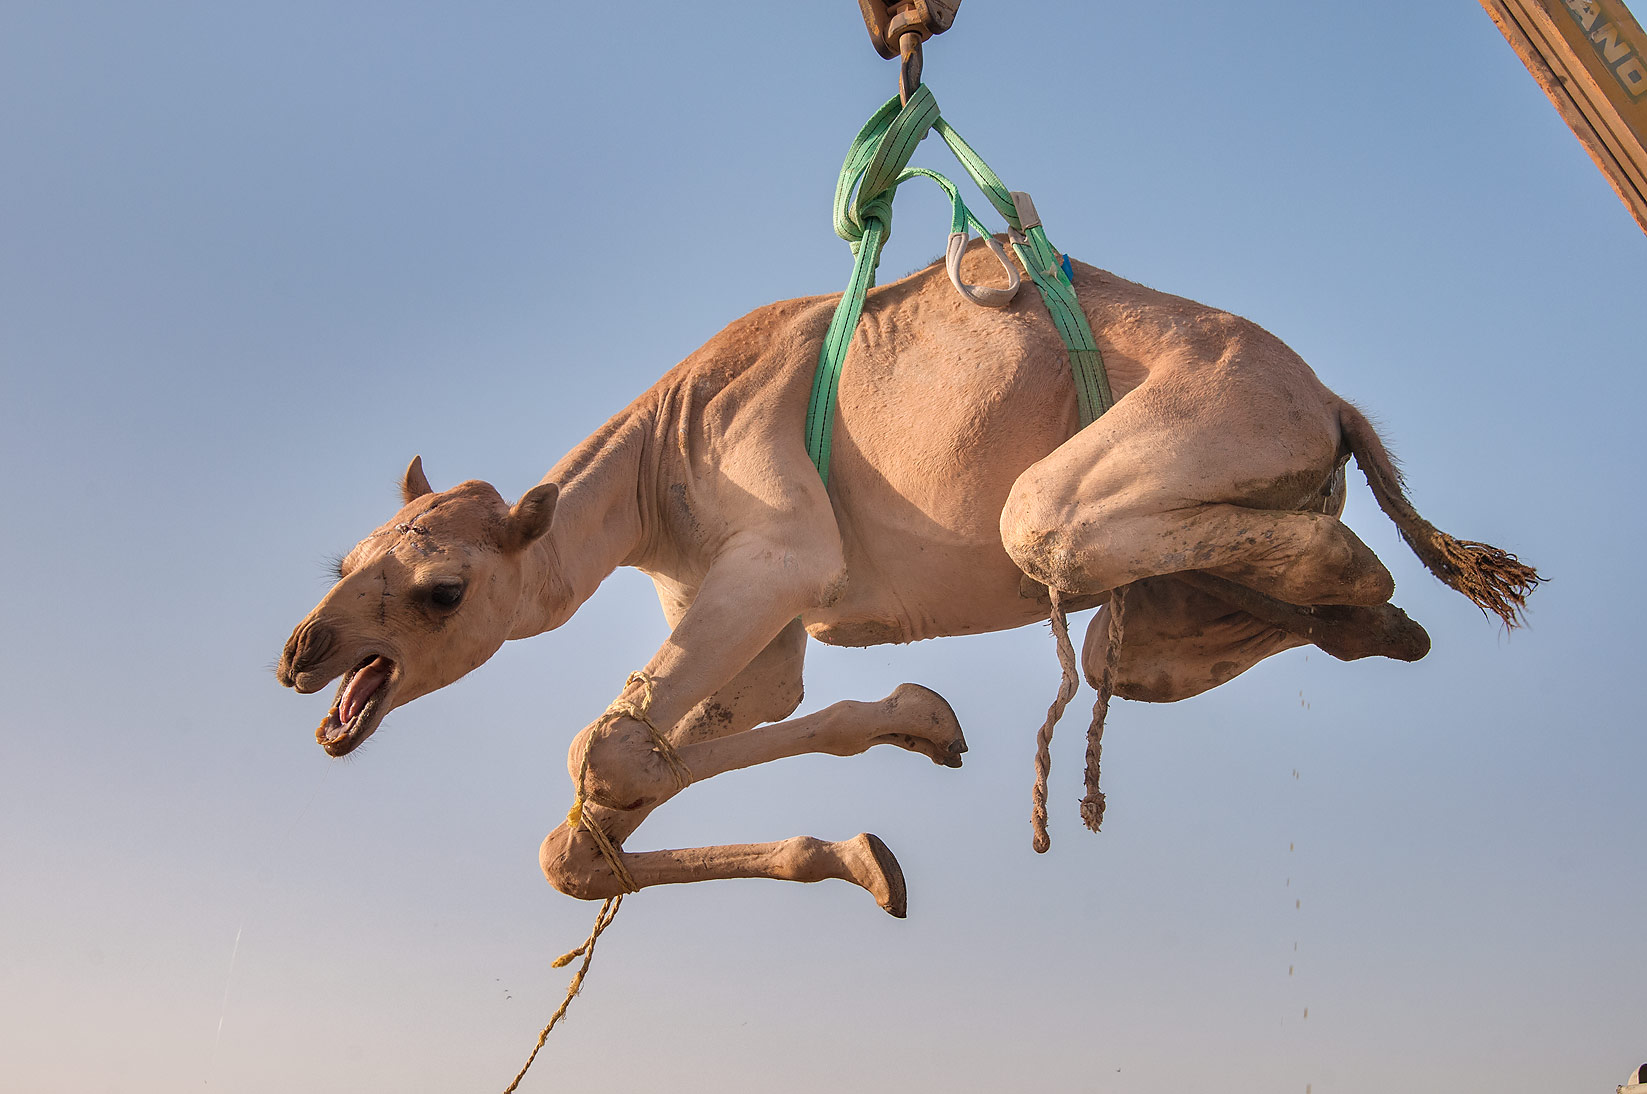 Camel lifted by hydraulic crane on a truck in...Market, Abu Hamour area. Doha, Qatar